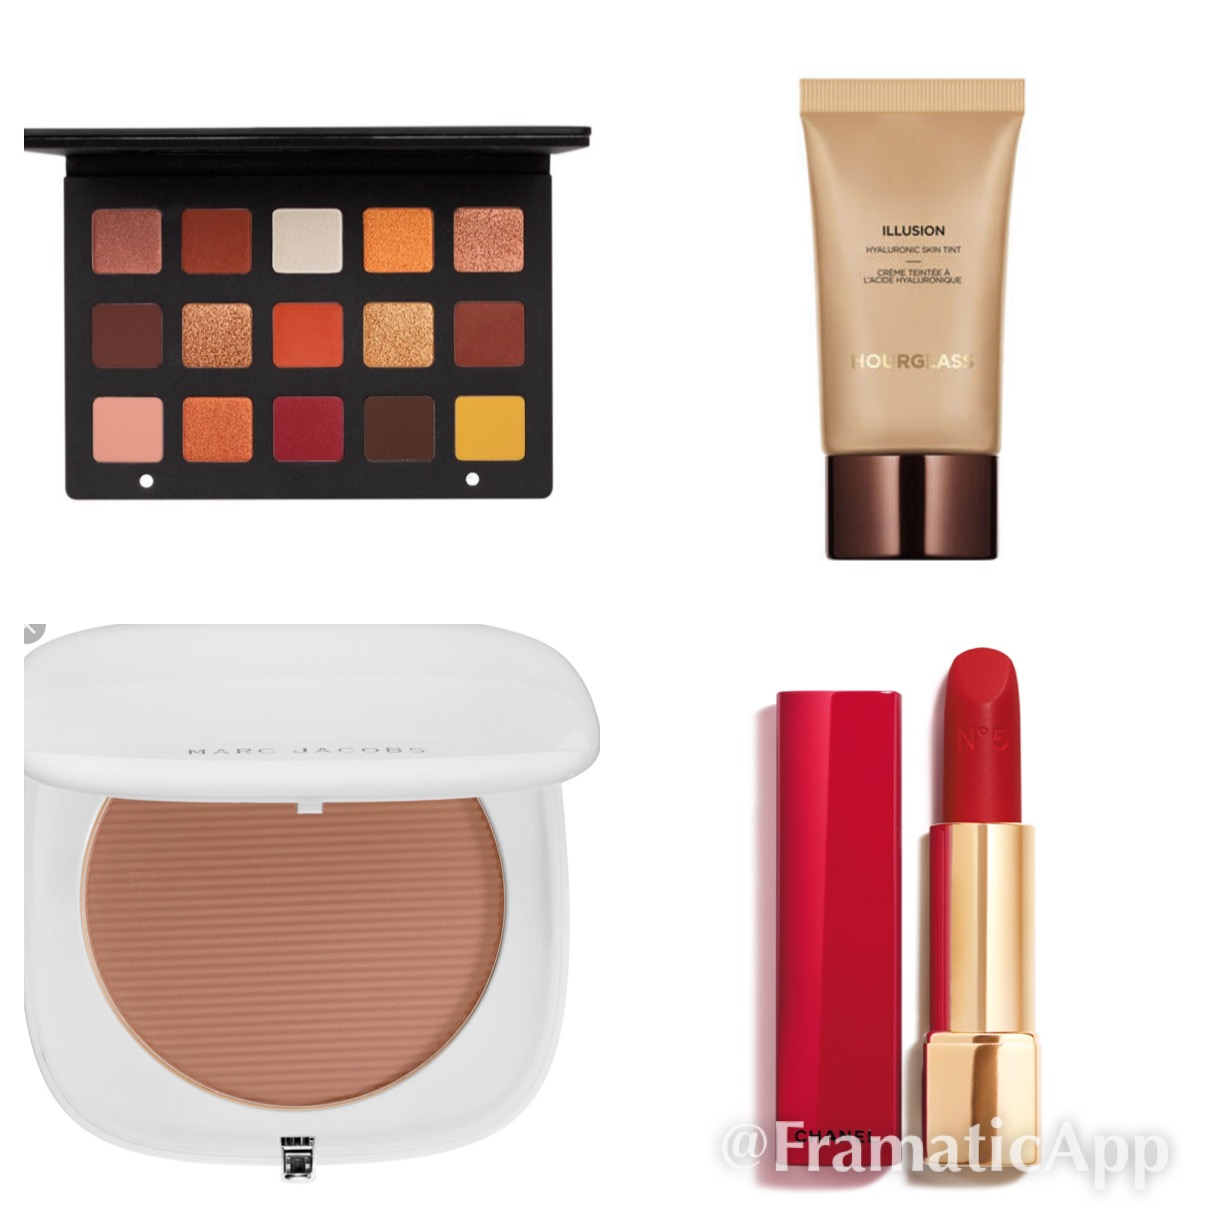 My Beauty Wishlist – Products I Want To Own Next